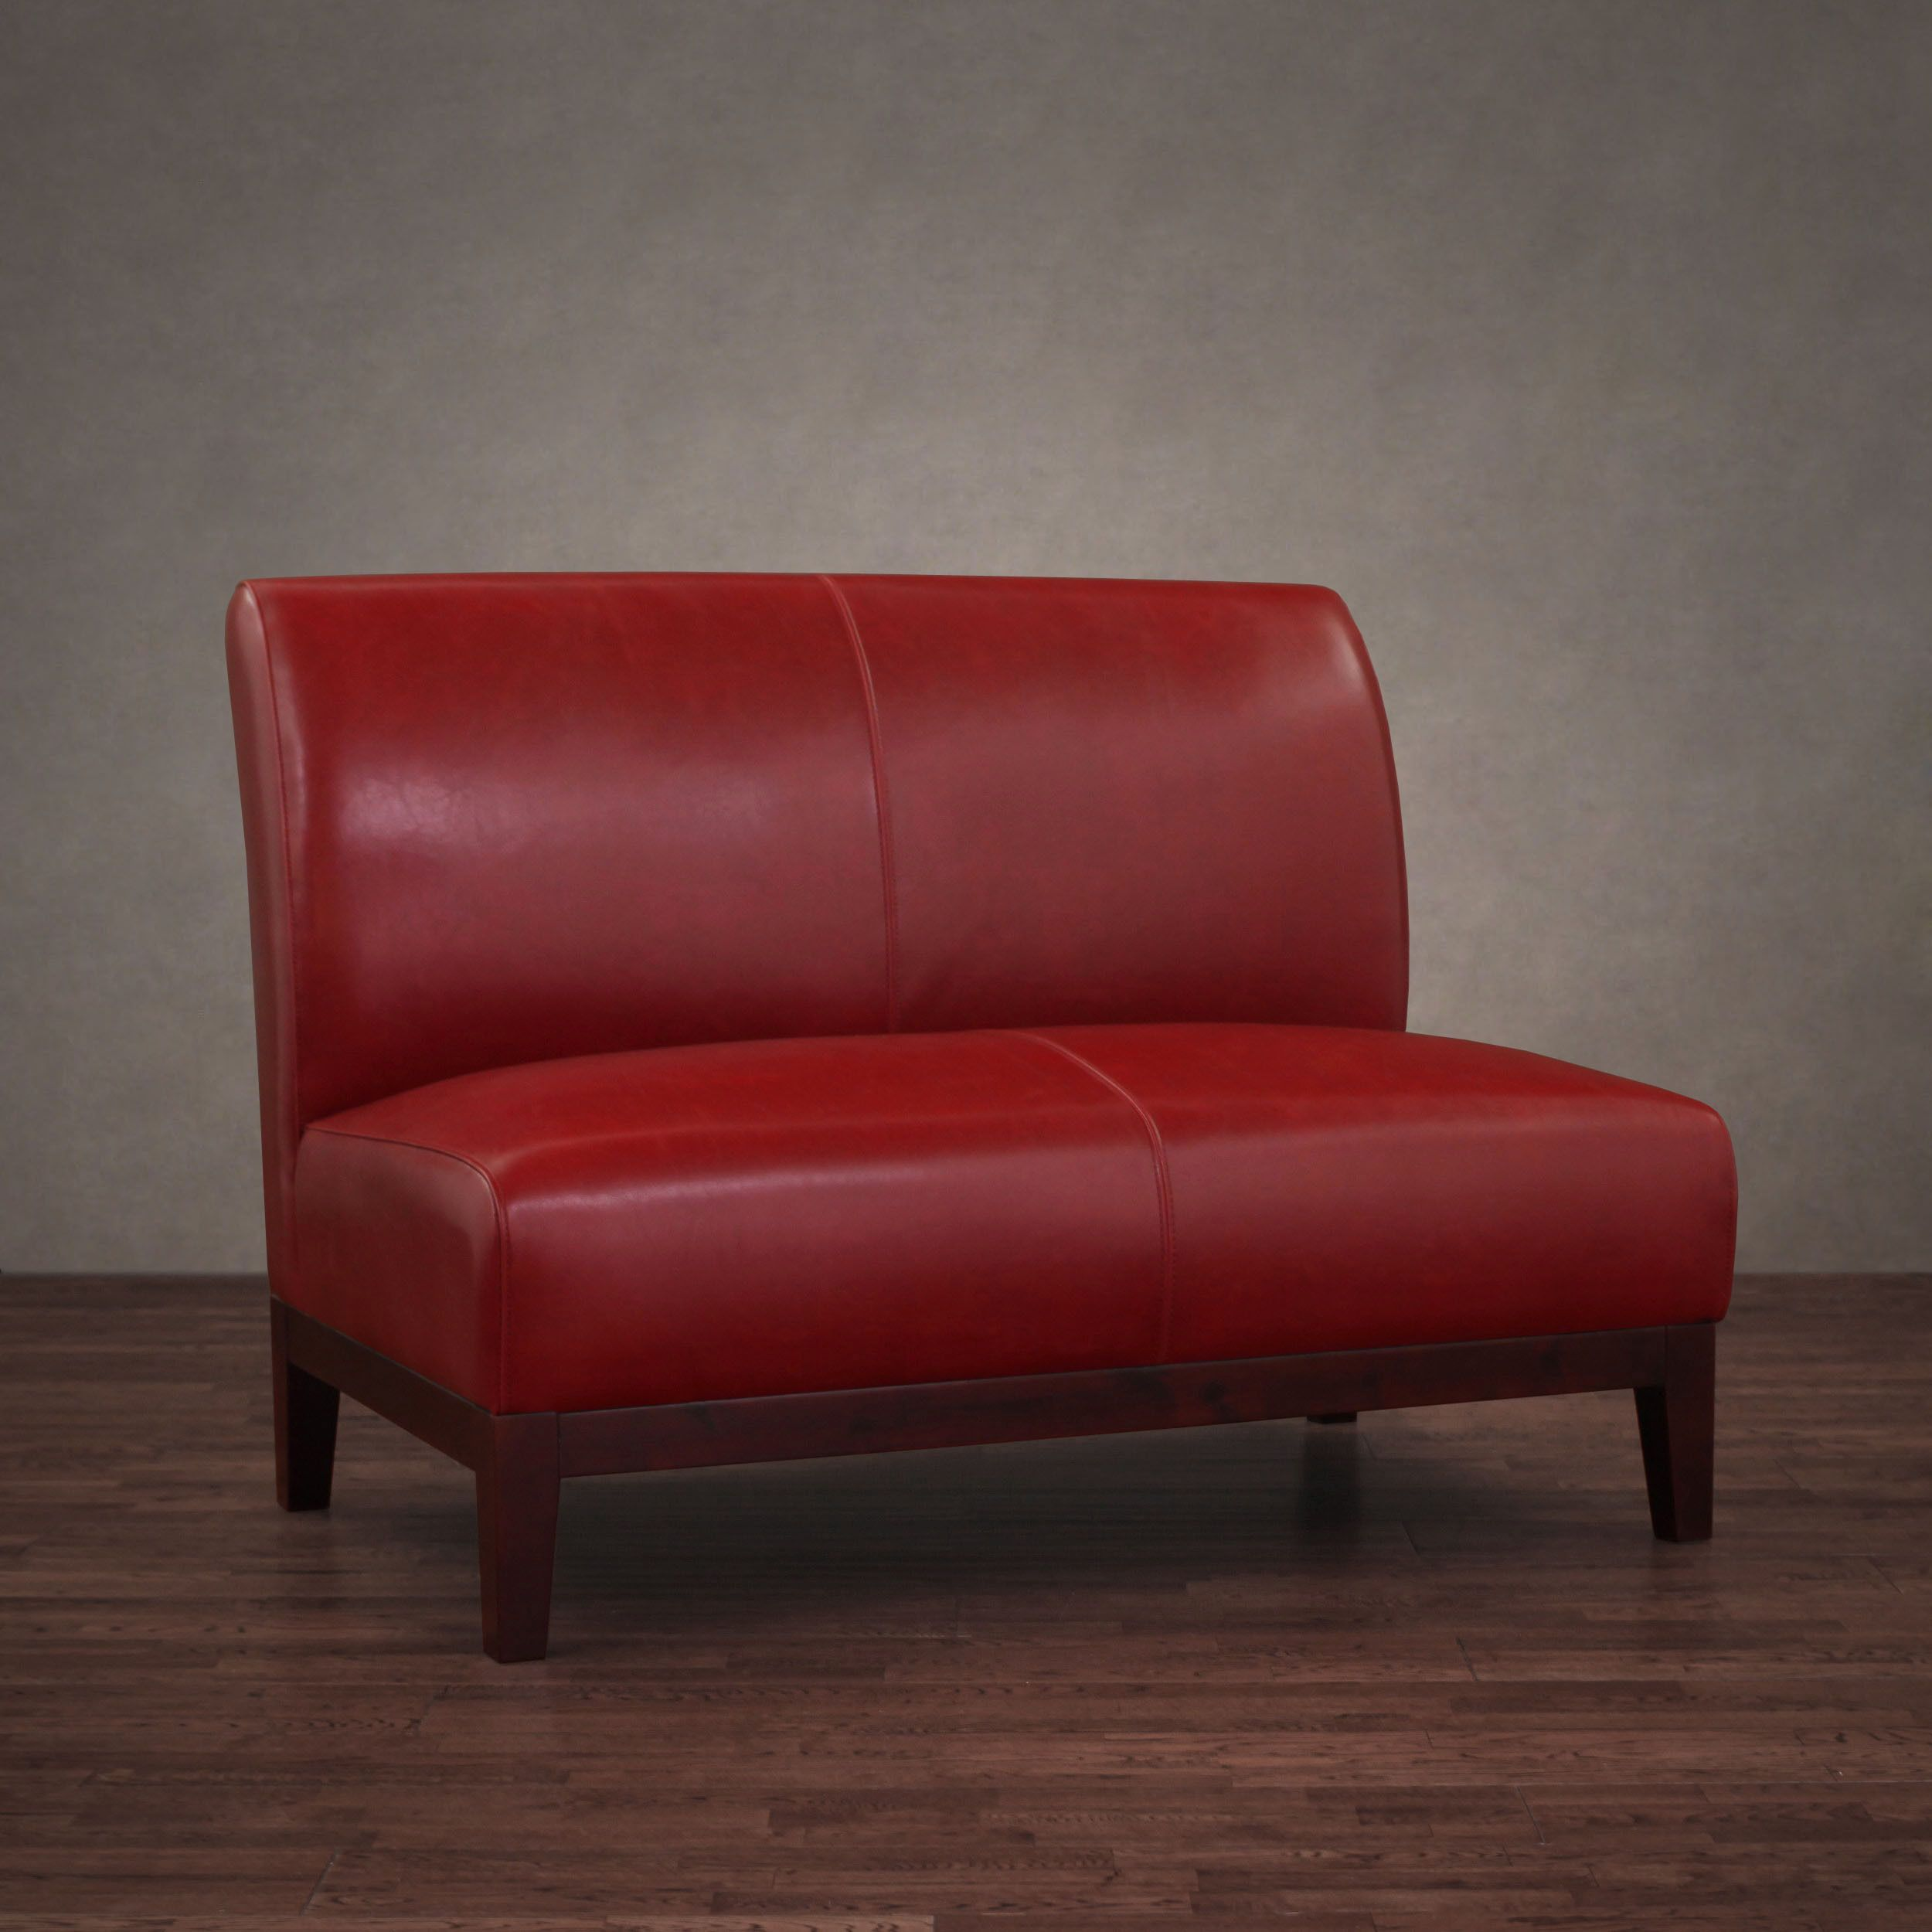 Sleek And Modern This Stunning Burnt Red Leather Loveseat